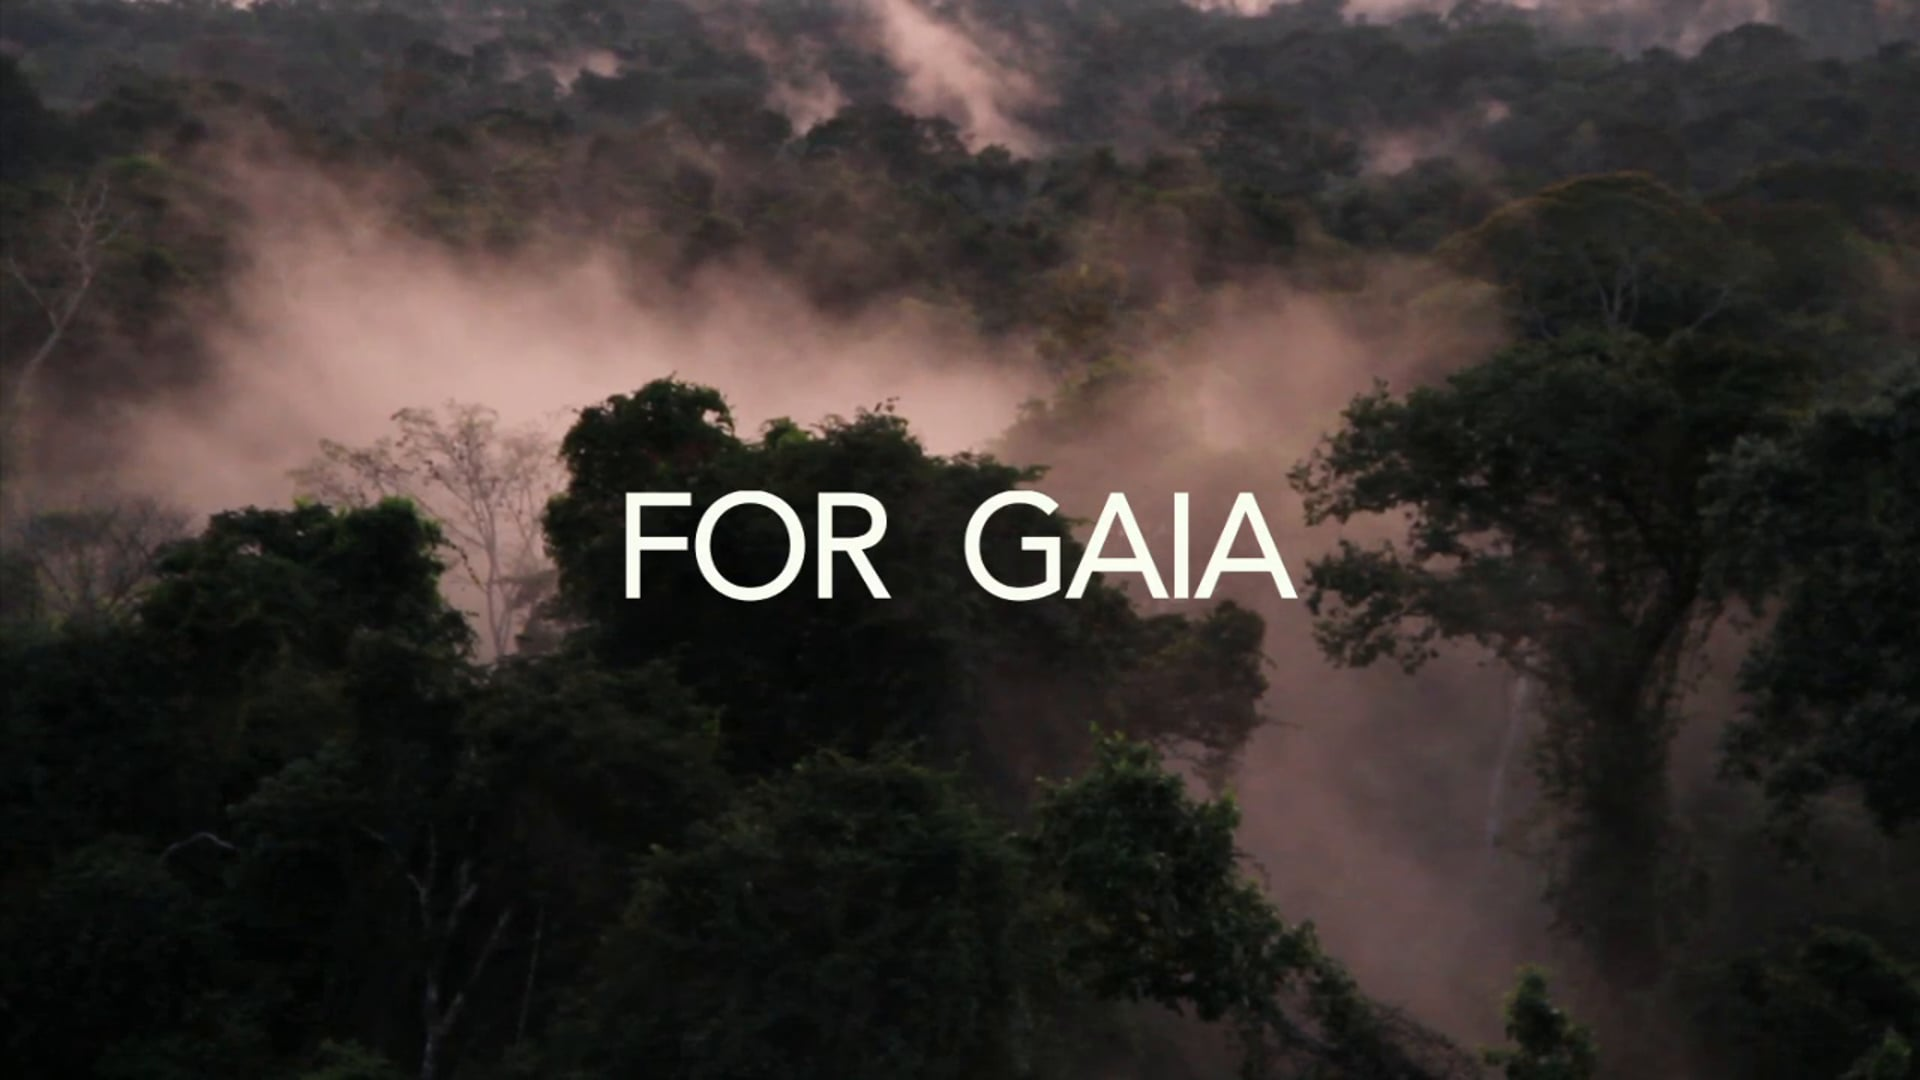 For Gaia